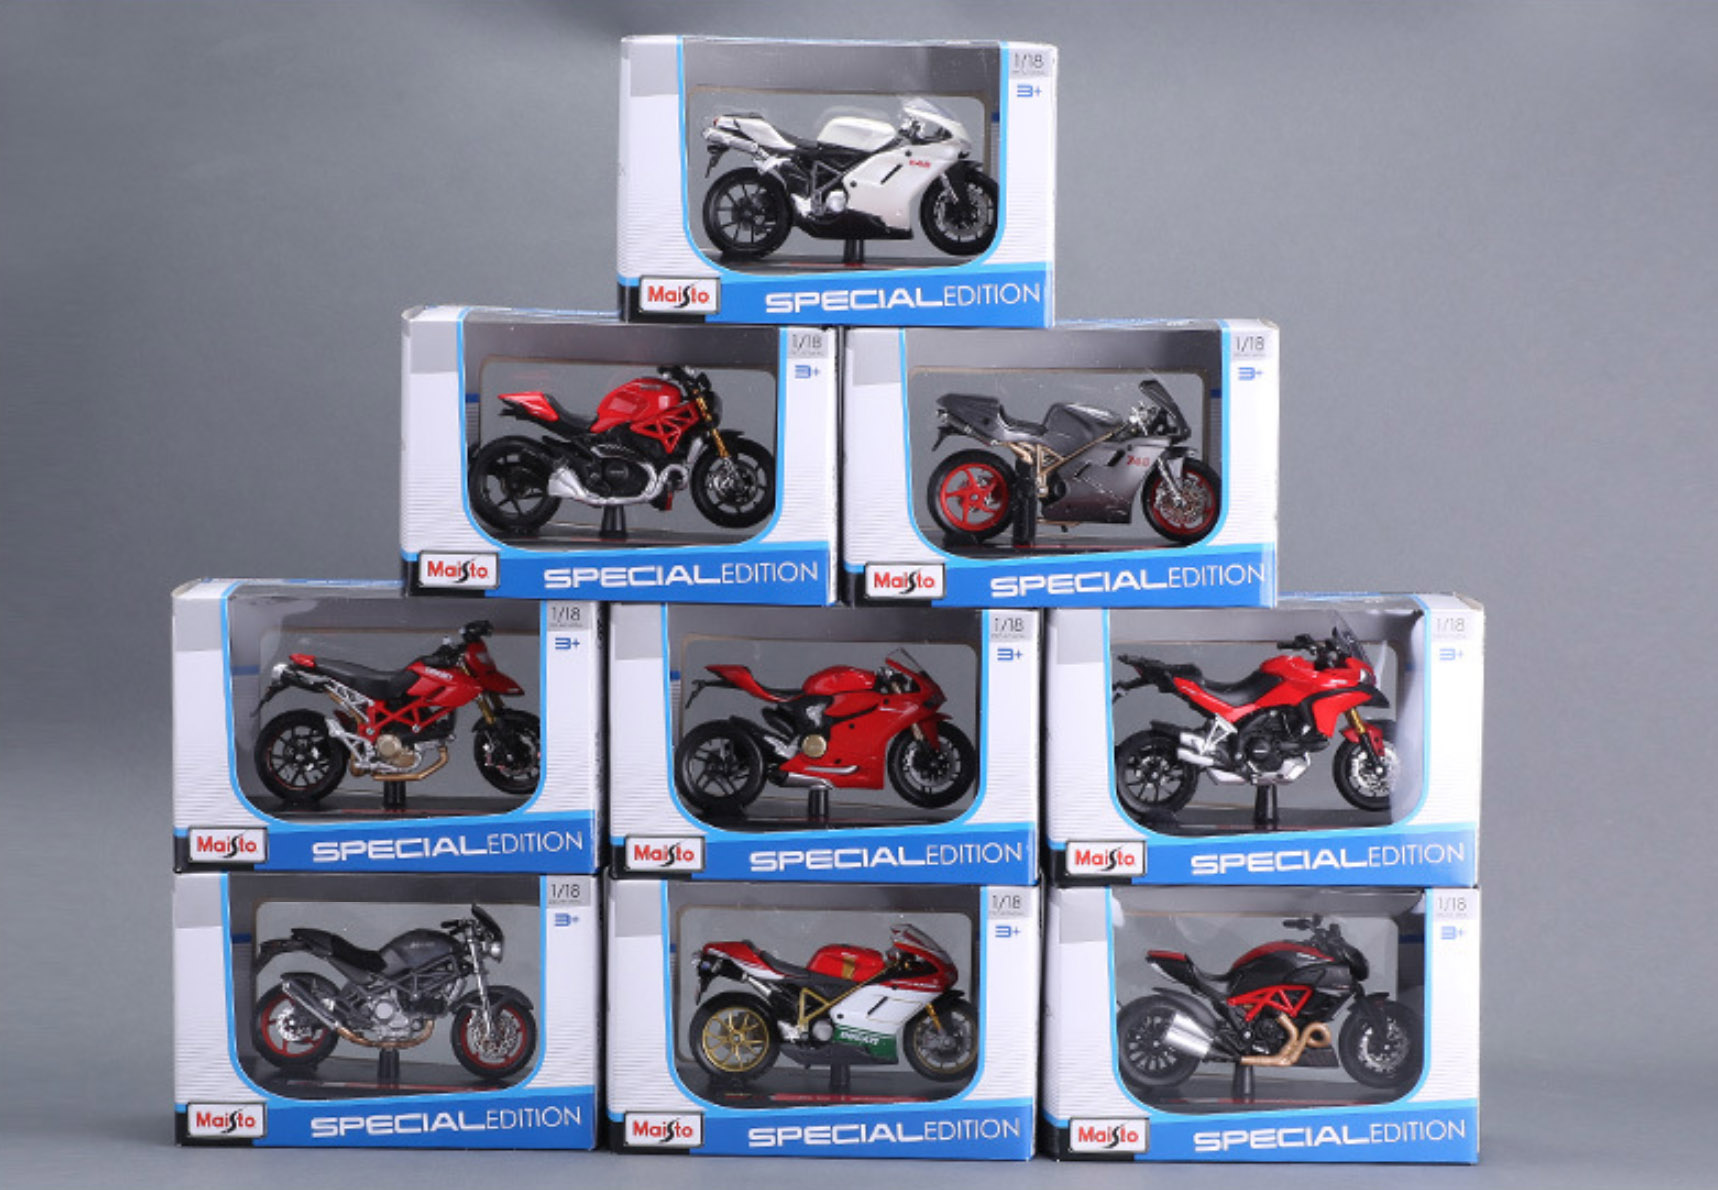 Maisto 1/18 1:18 Scale Suzuki Kawasaki Yamaha Triumph KTM Ducati Motorcycles Motorbikes Diecast Display Models Toy For Boys Kids